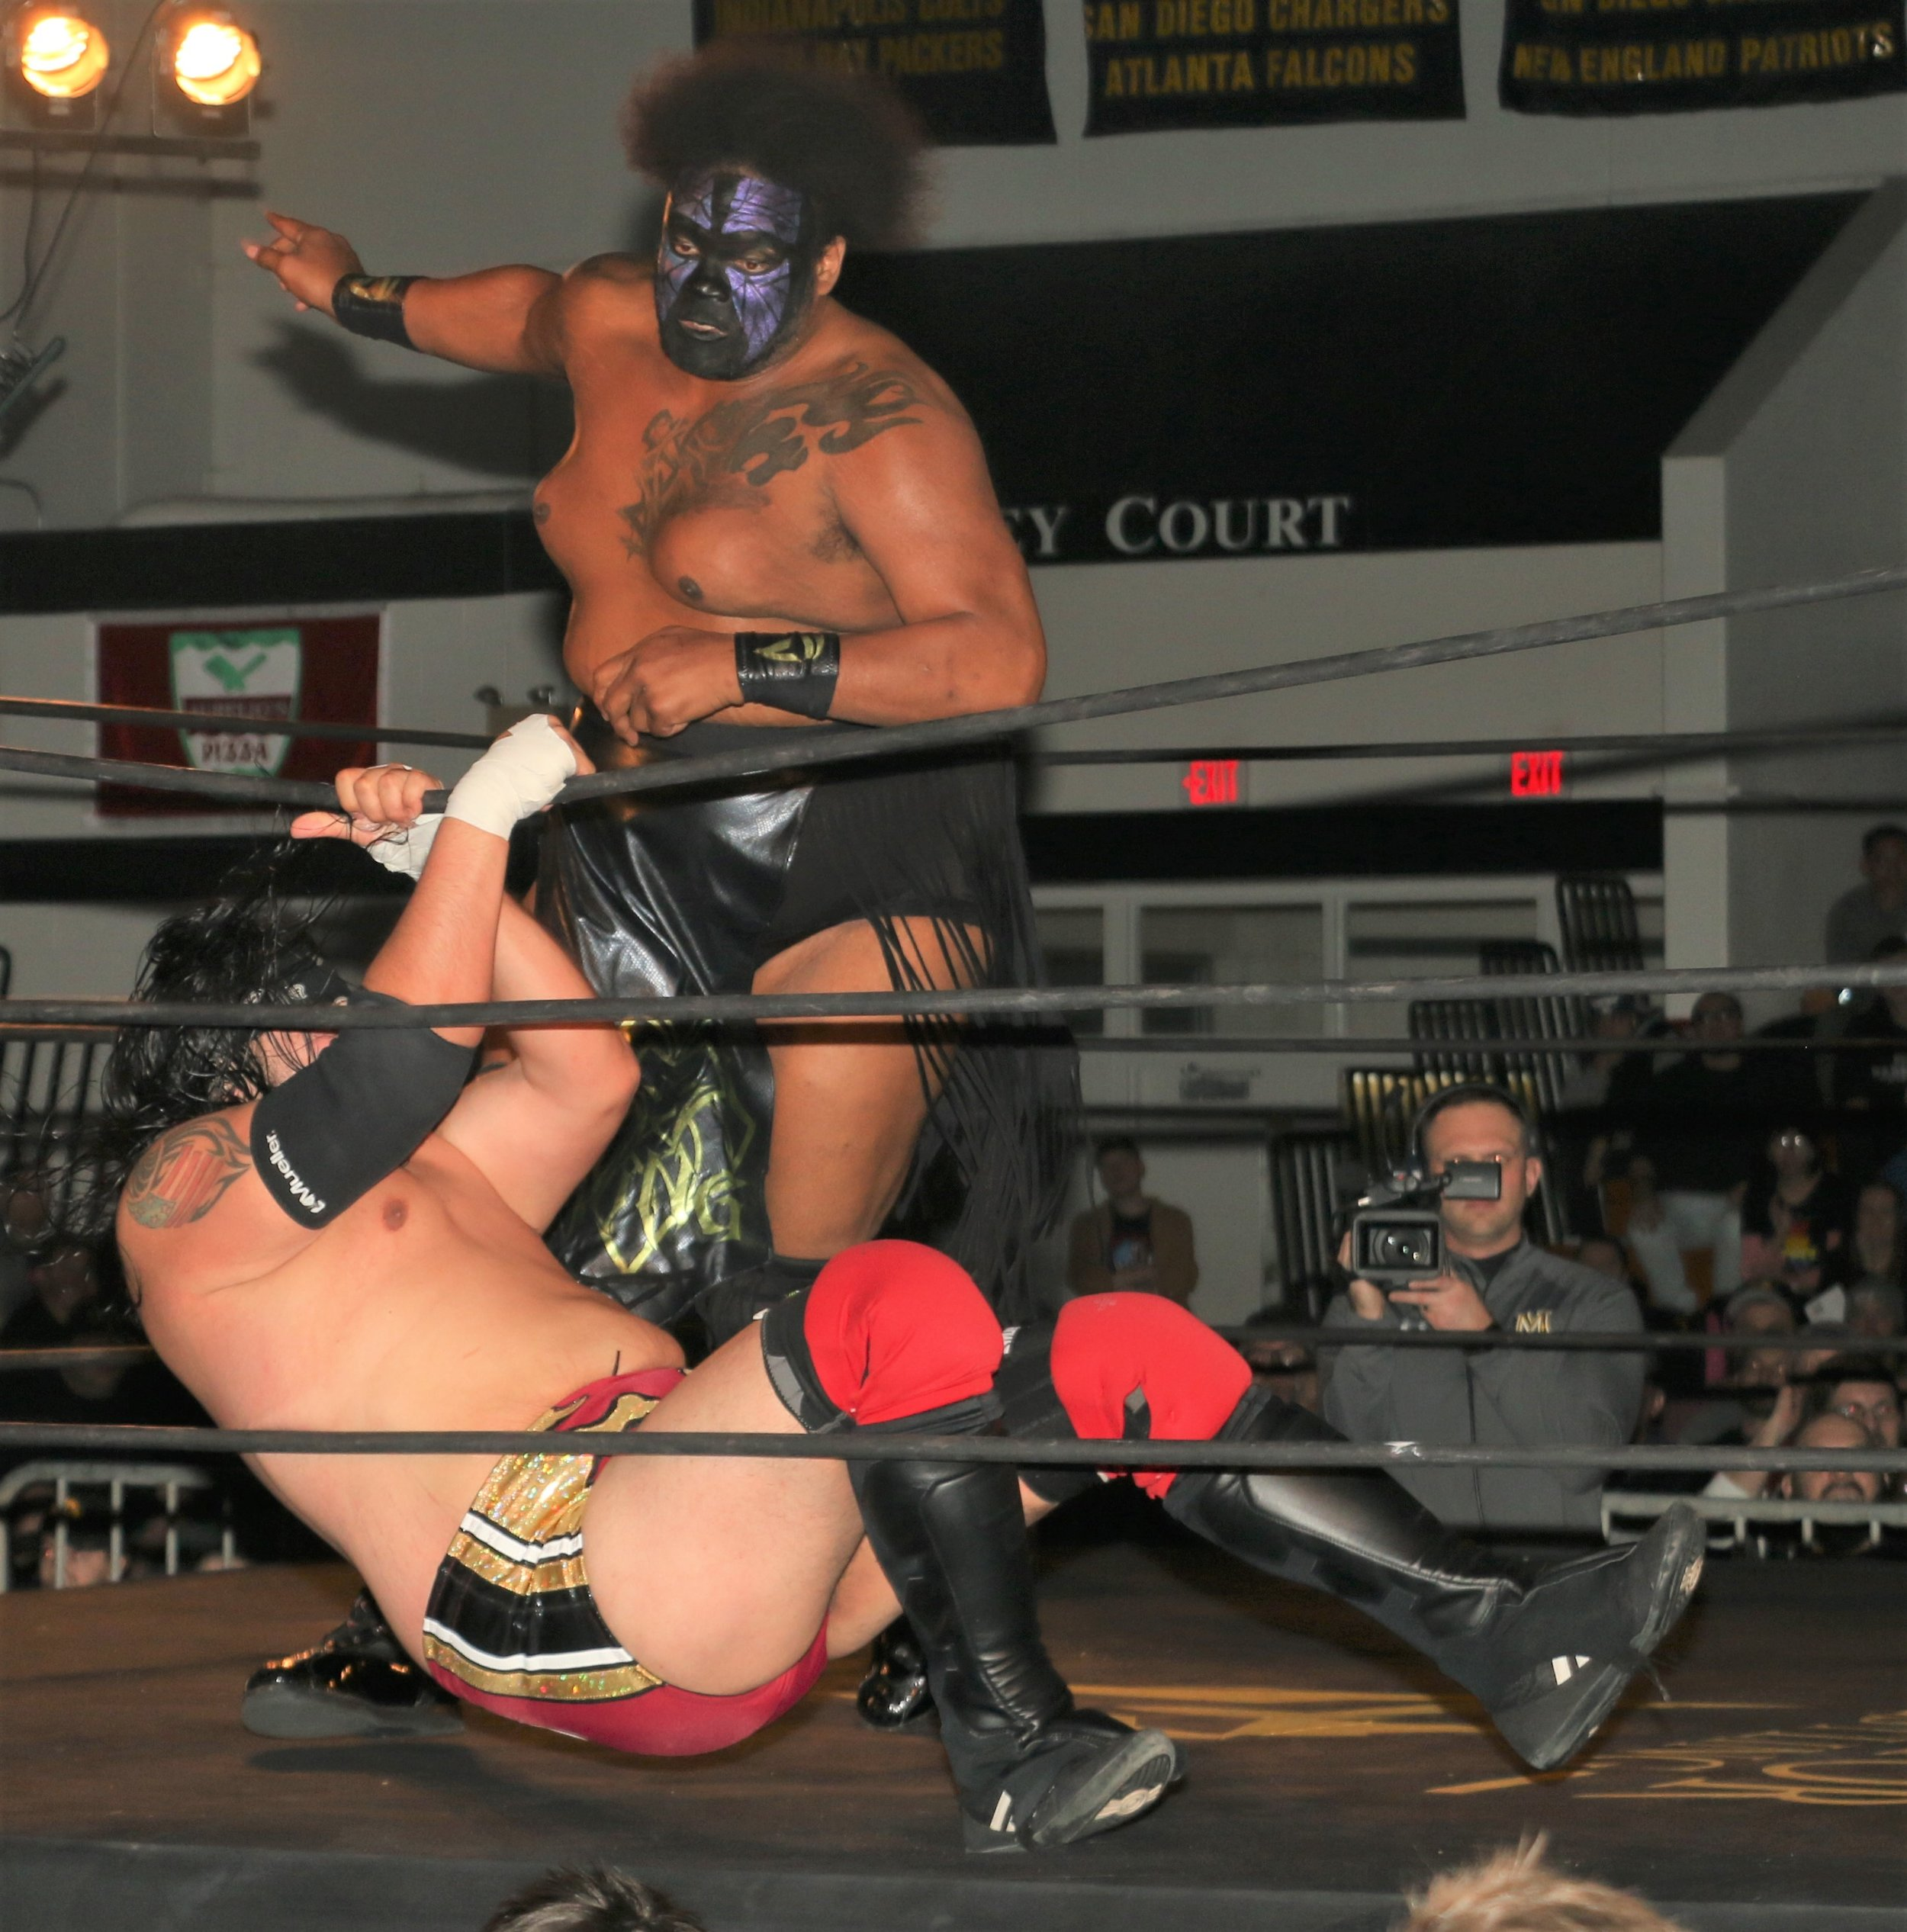 Chris Castro holds down the top rope, allowing Kongo Kong to fall to the floor during the three-way tag team match.